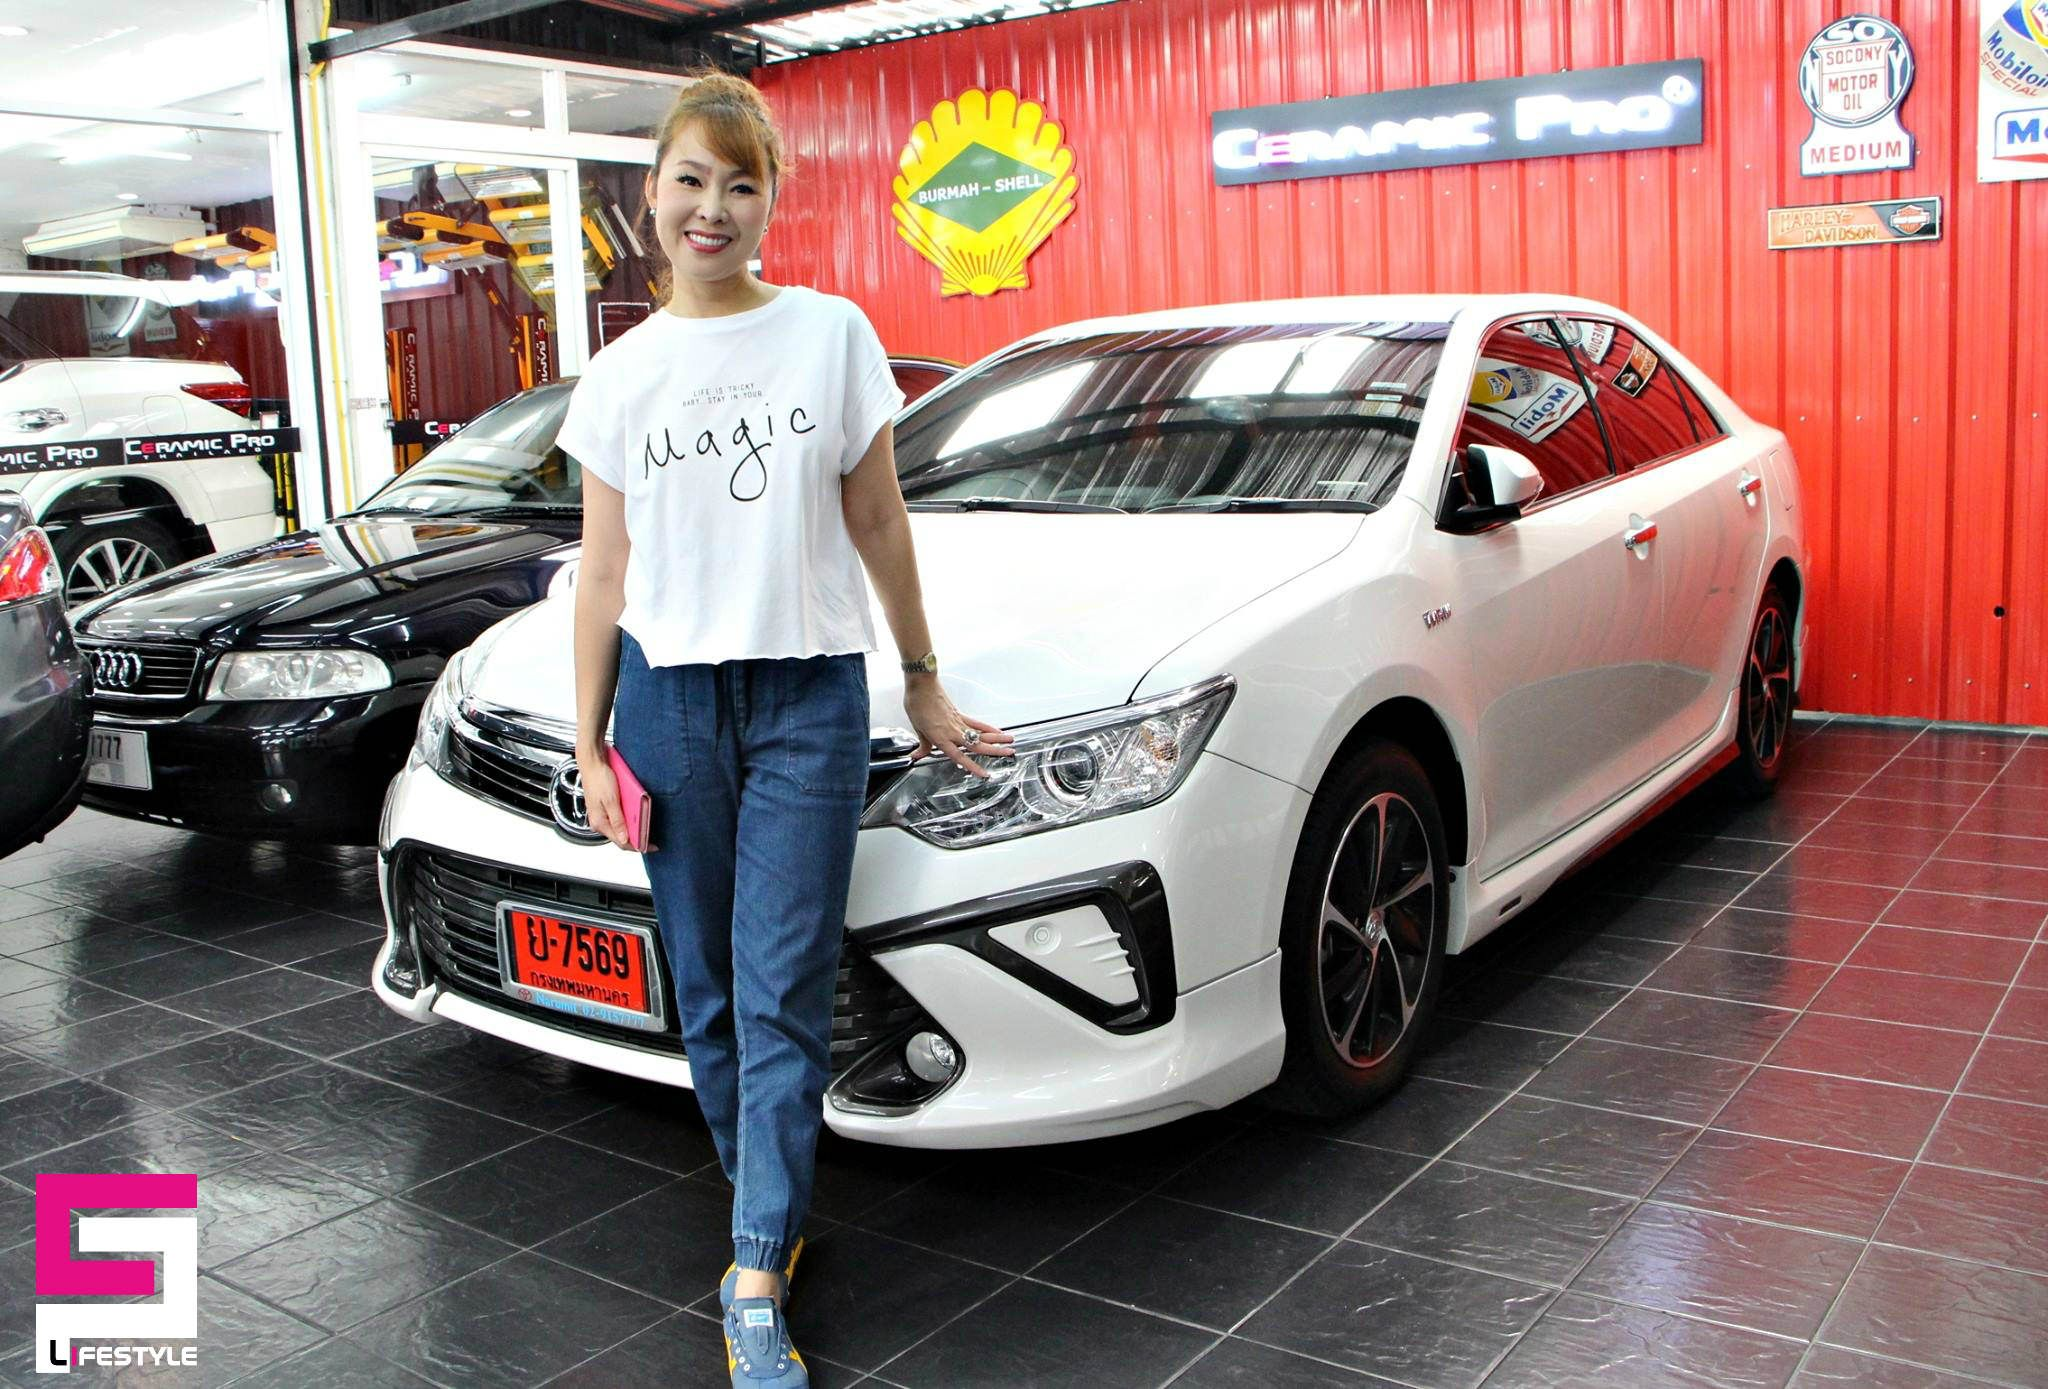 The Lovely Car Owner And Her Amazing Ceramic Pro Protected Toyota Are Ready For A Road Photo By Ceramic Pro Thailand Lovely Car Car Toyota